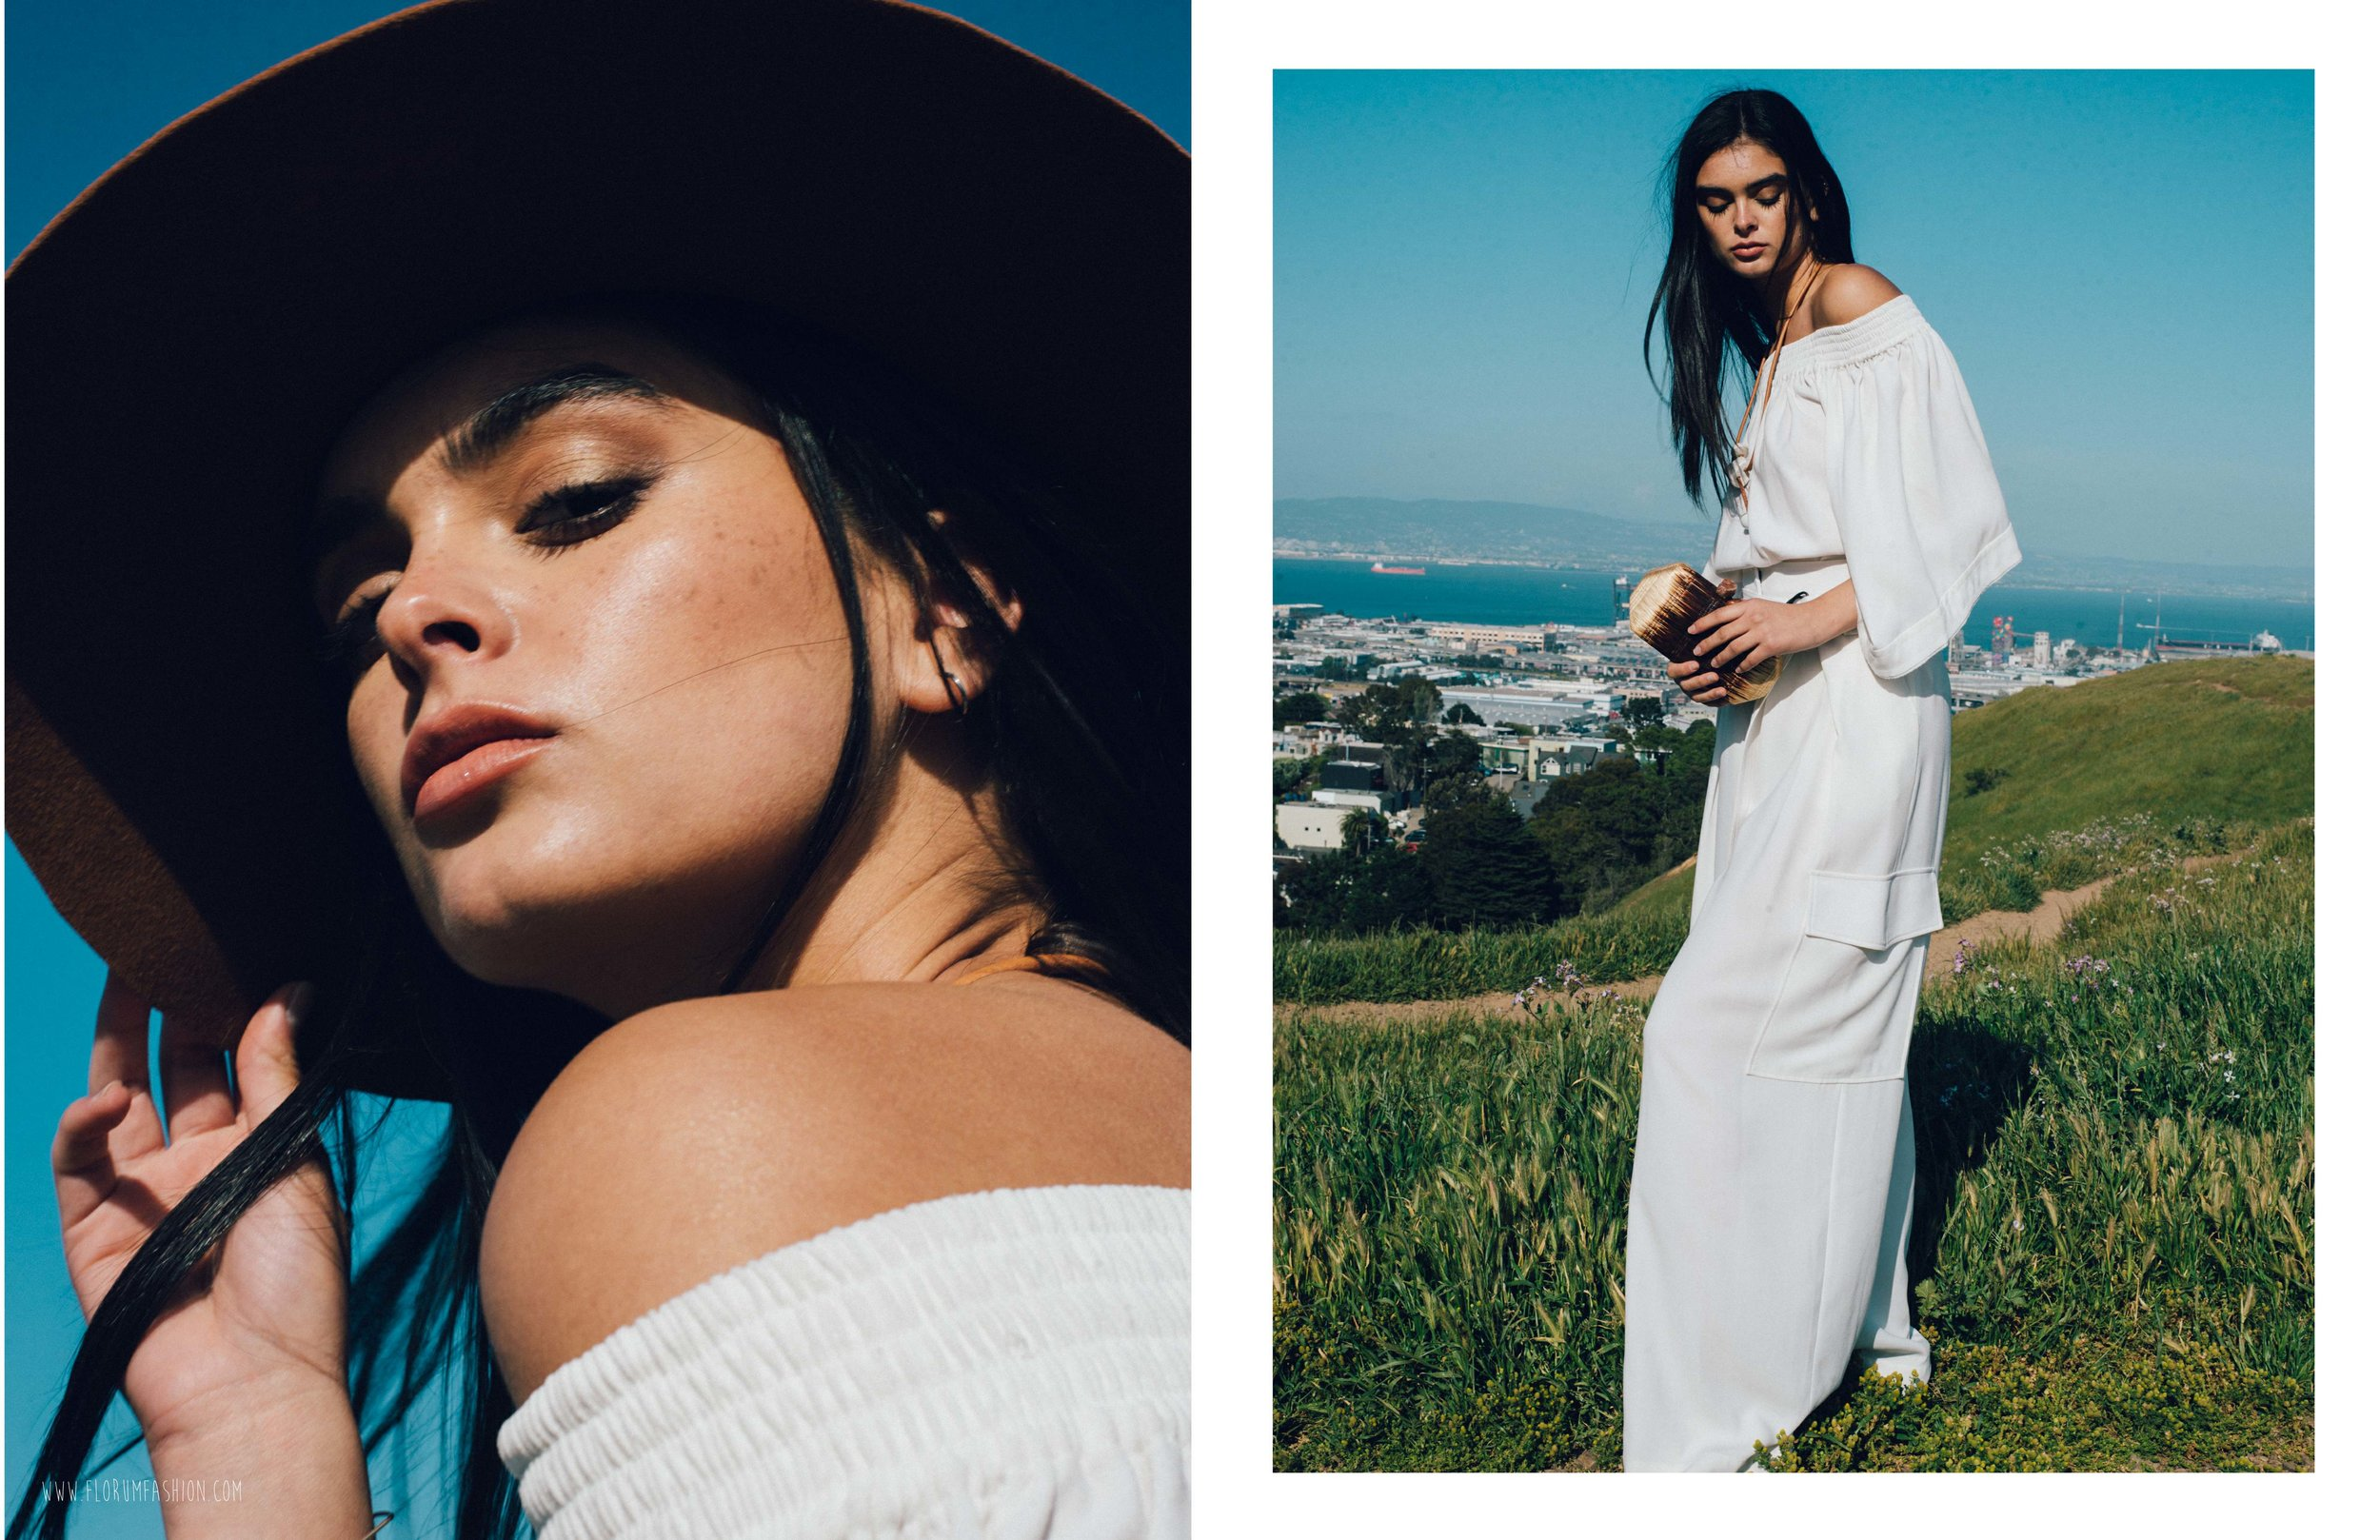 Madison Flowers of Stars Models by Lionel Reyes for Florum Fashion Magazine - Sustainable Project San Francisco California - Stephanie Stimmler Venita Stylist - Cassandra McClure03.jpg